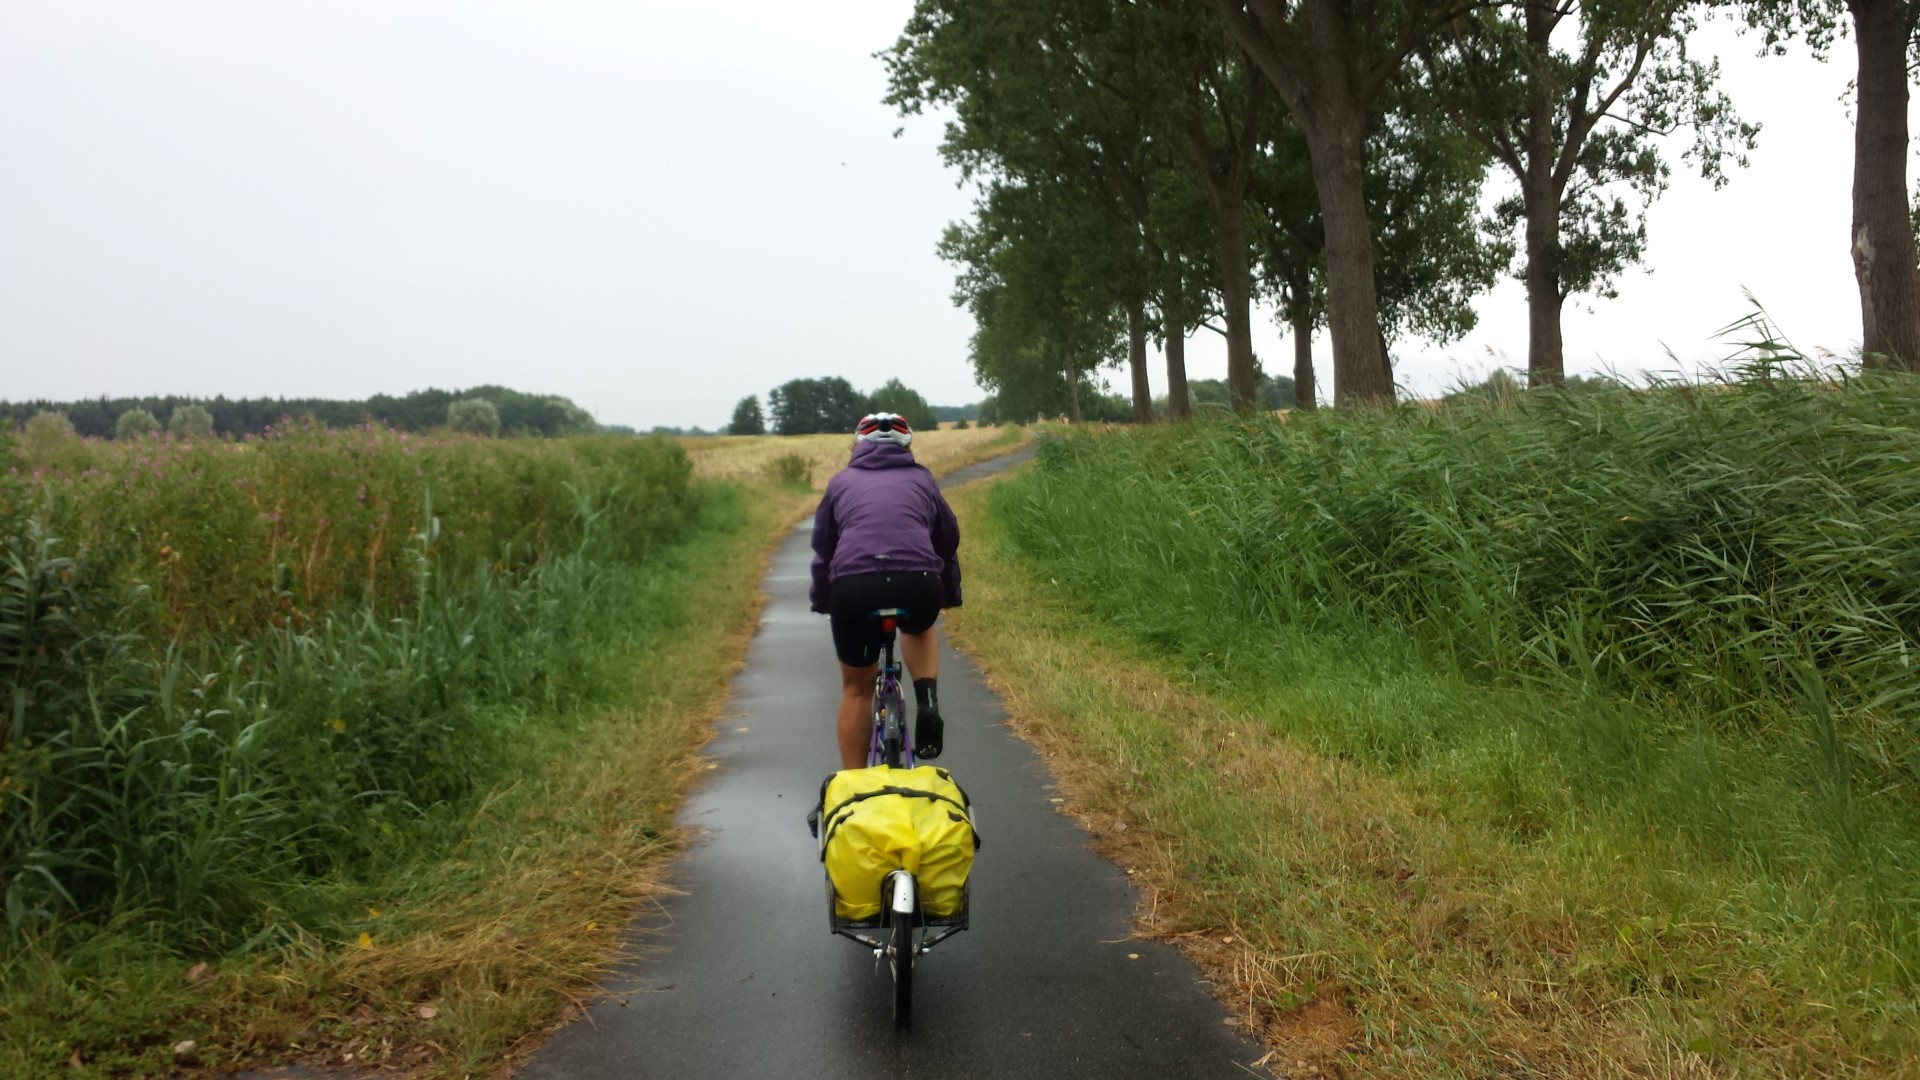 Cycling in the rain from Rerik to Boltenhagen